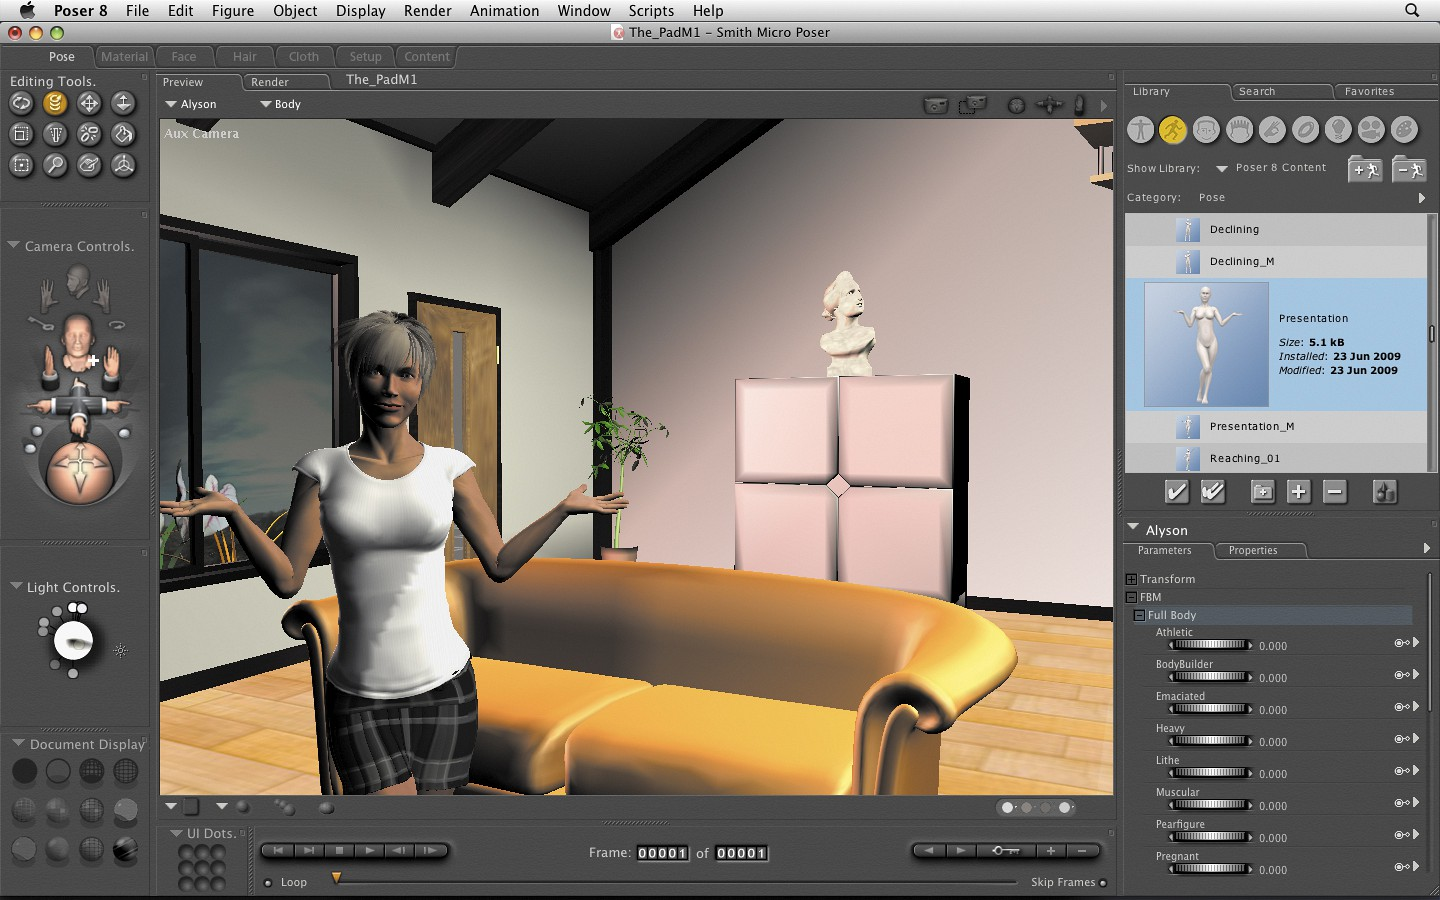 Poser 3D Character Art and Animation Software